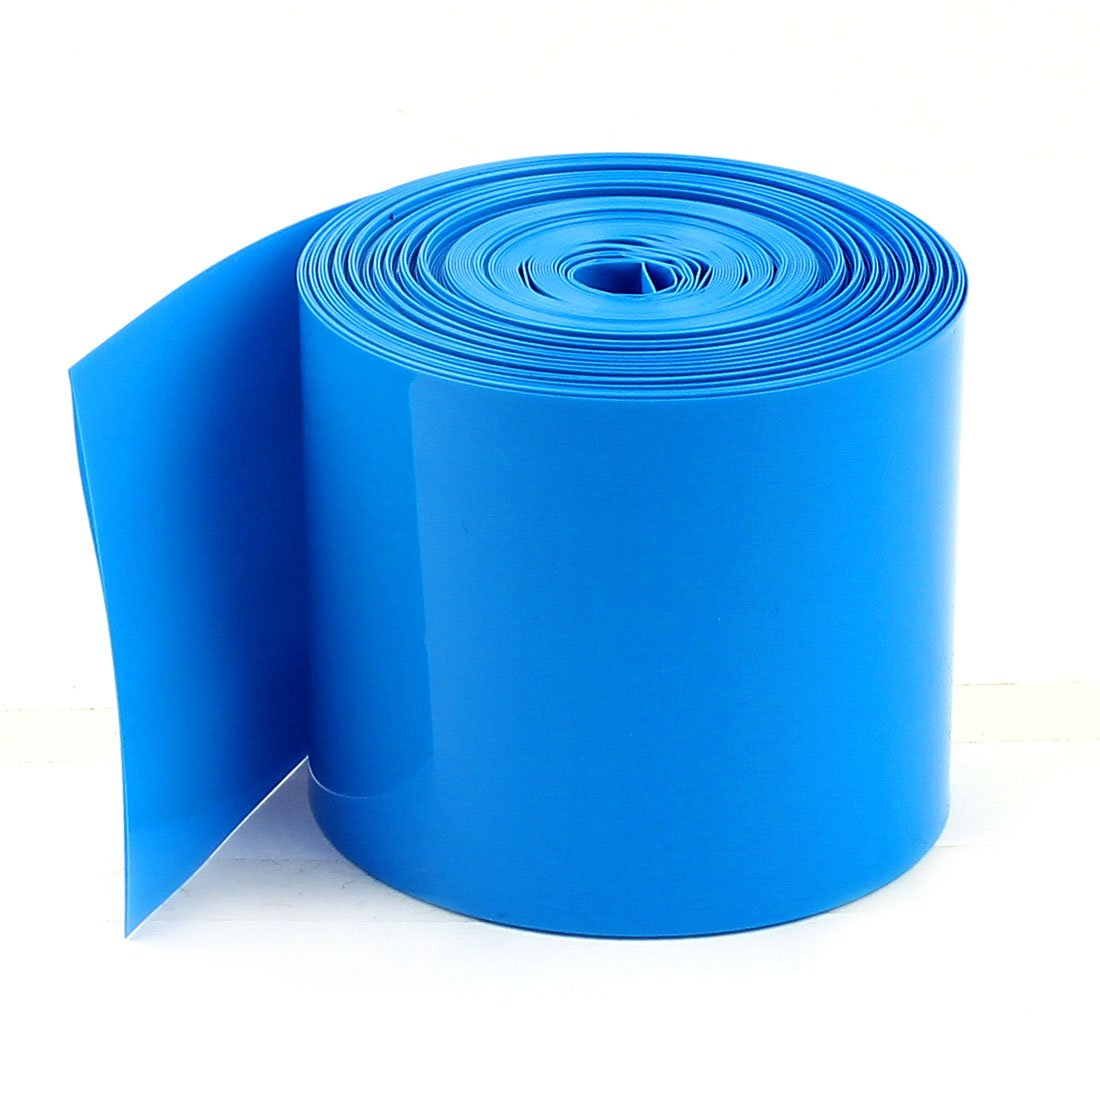 Cheap SALE Start uxcell Large discharge sale 10Meters 50mm Width PVC Heat Tube Shrink Wrap for Blue 2